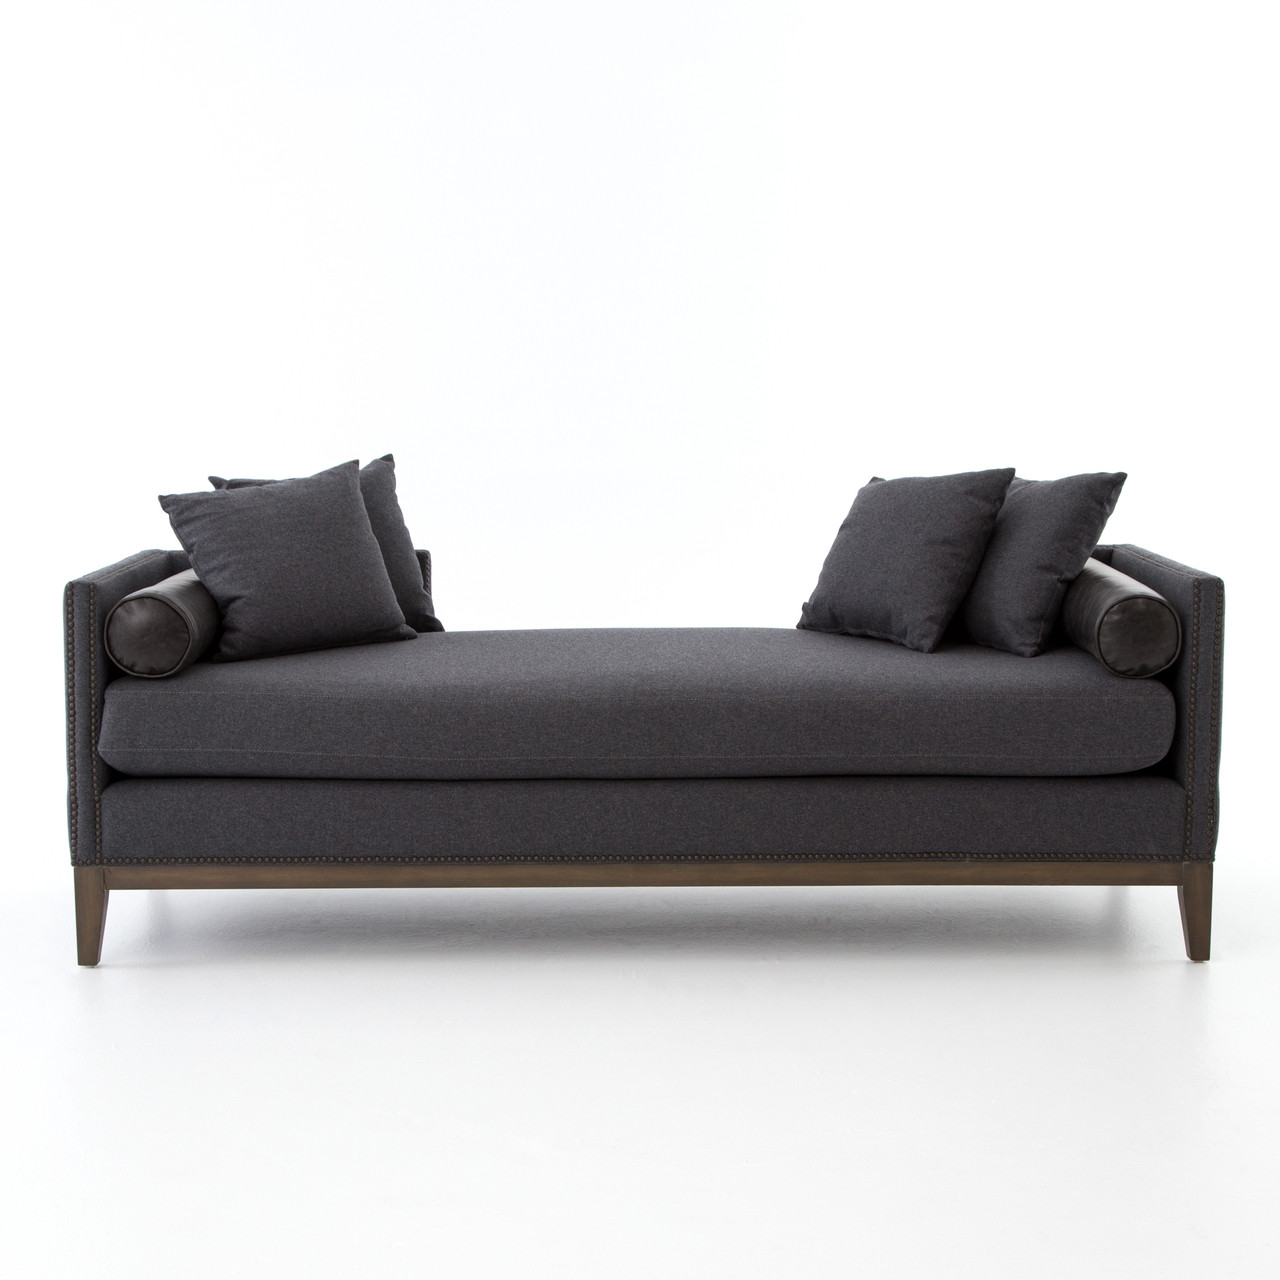 kensington chaise sofa bed stanford dark teal charcoal upholstered double daybed zin